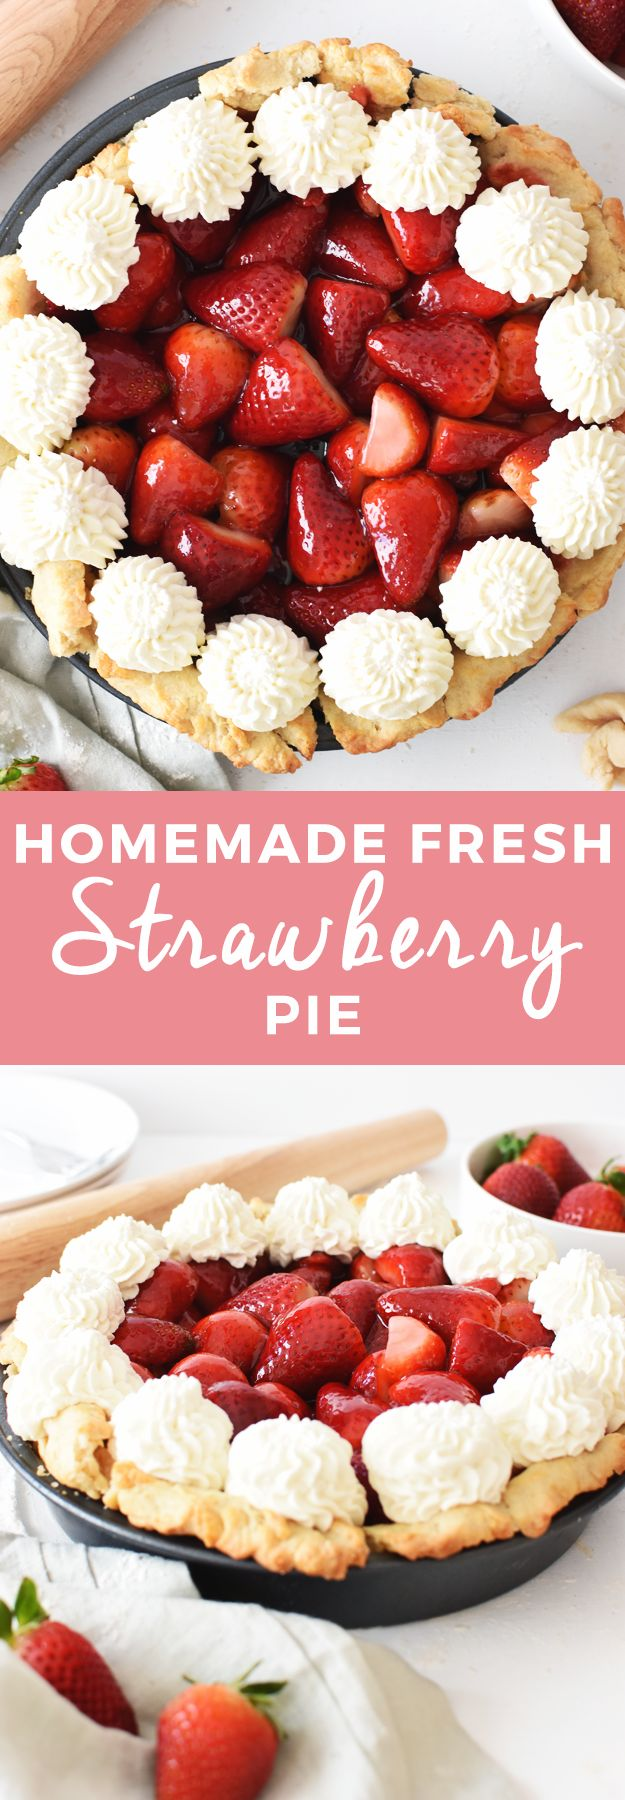 Looking for a go-to pie recipe? Make this simple and fresh strawberry pie! It is delicious and the perfect dessert for any occasion. Pie fives all around!